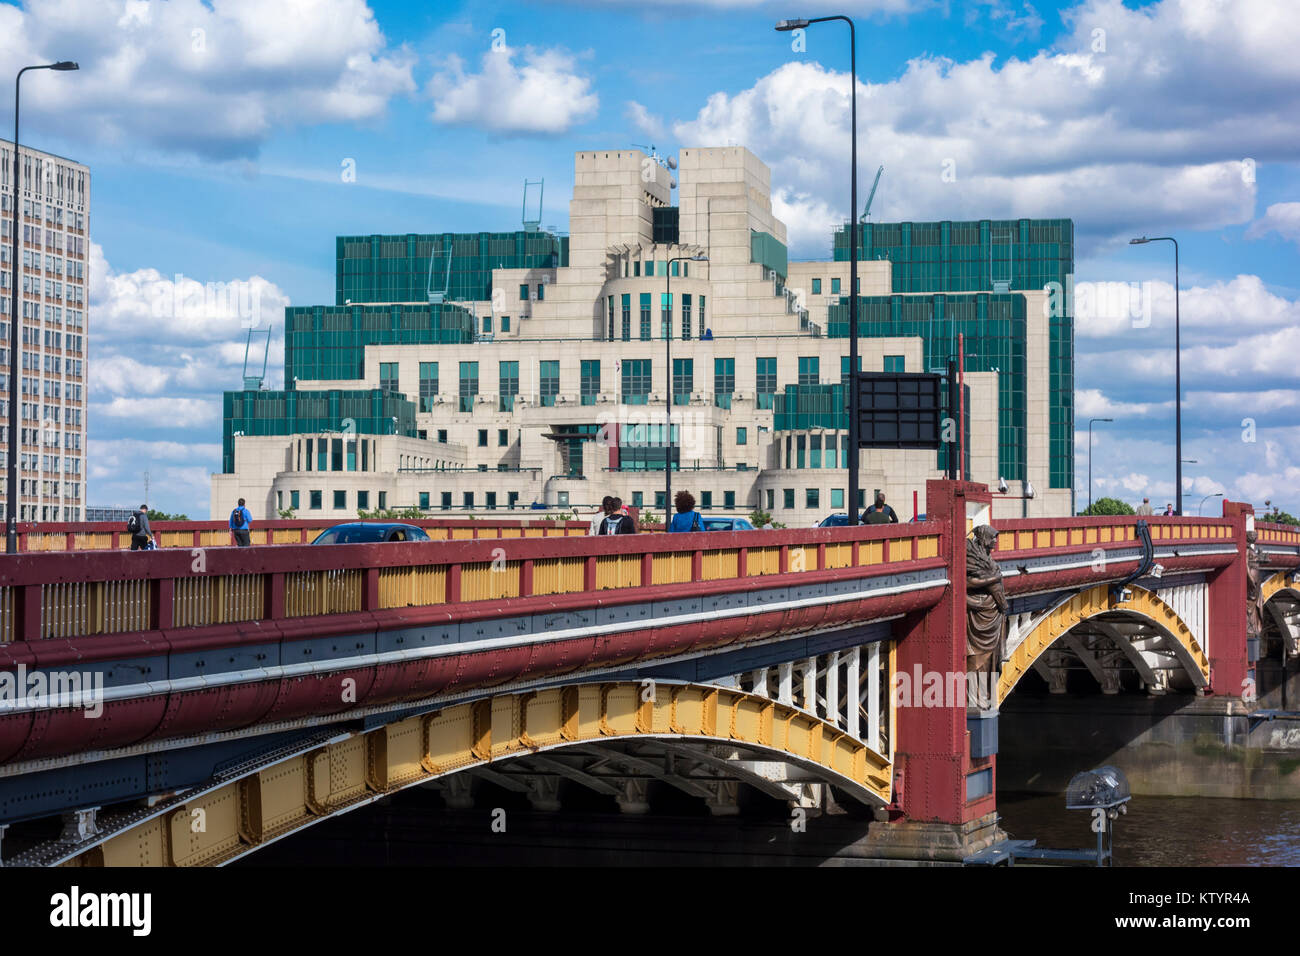 SIS Building, MI6 Building, Vauxhall Cross headquarters of the Secret Intelligence Service, Albert Embankment,Vauxhall, - Stock Image